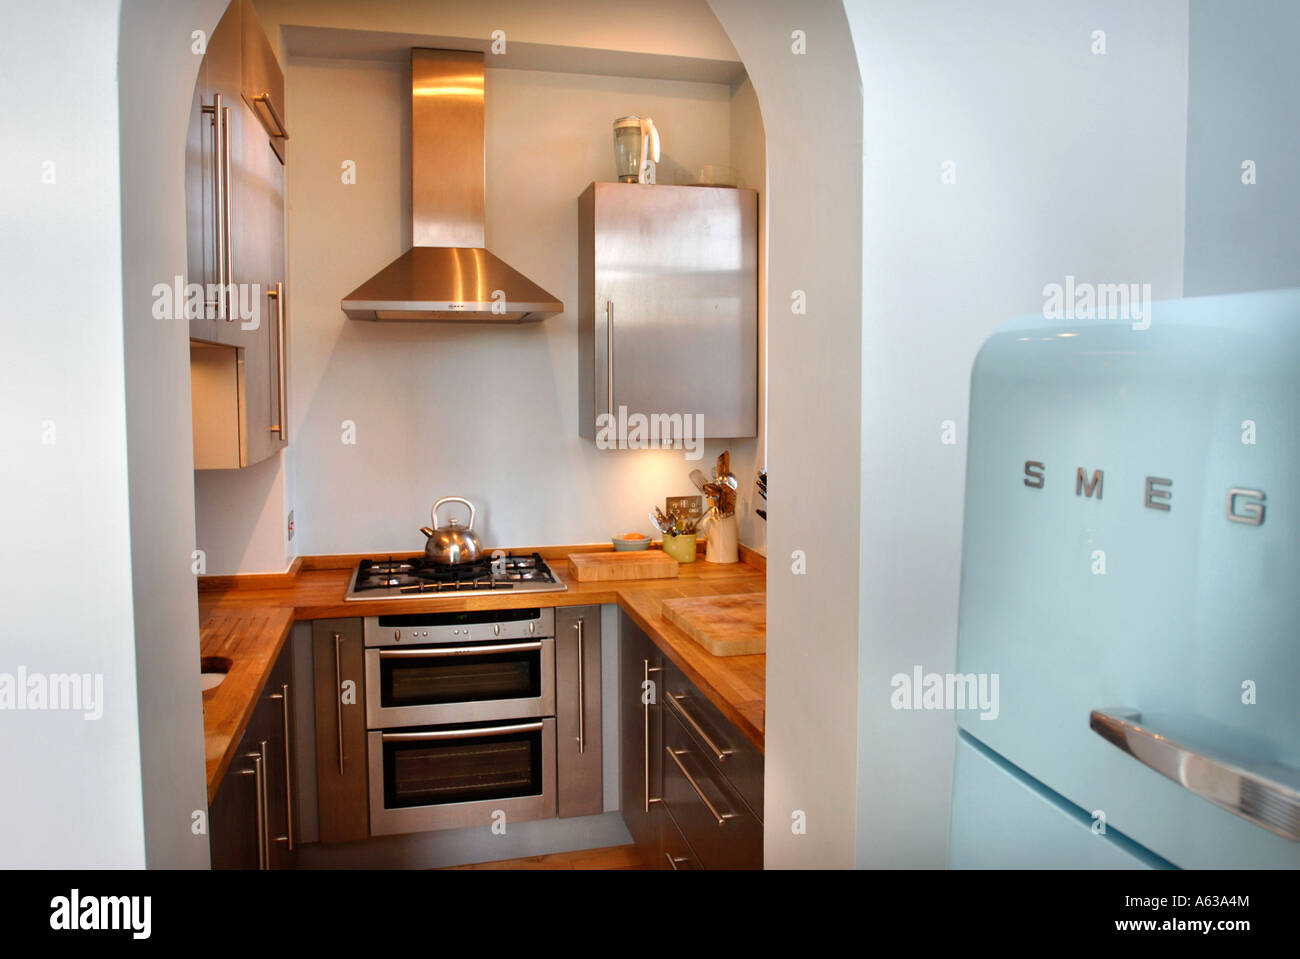 A small fitted kitchen with a smeg fridge uk stock photo for Small fitted kitchens